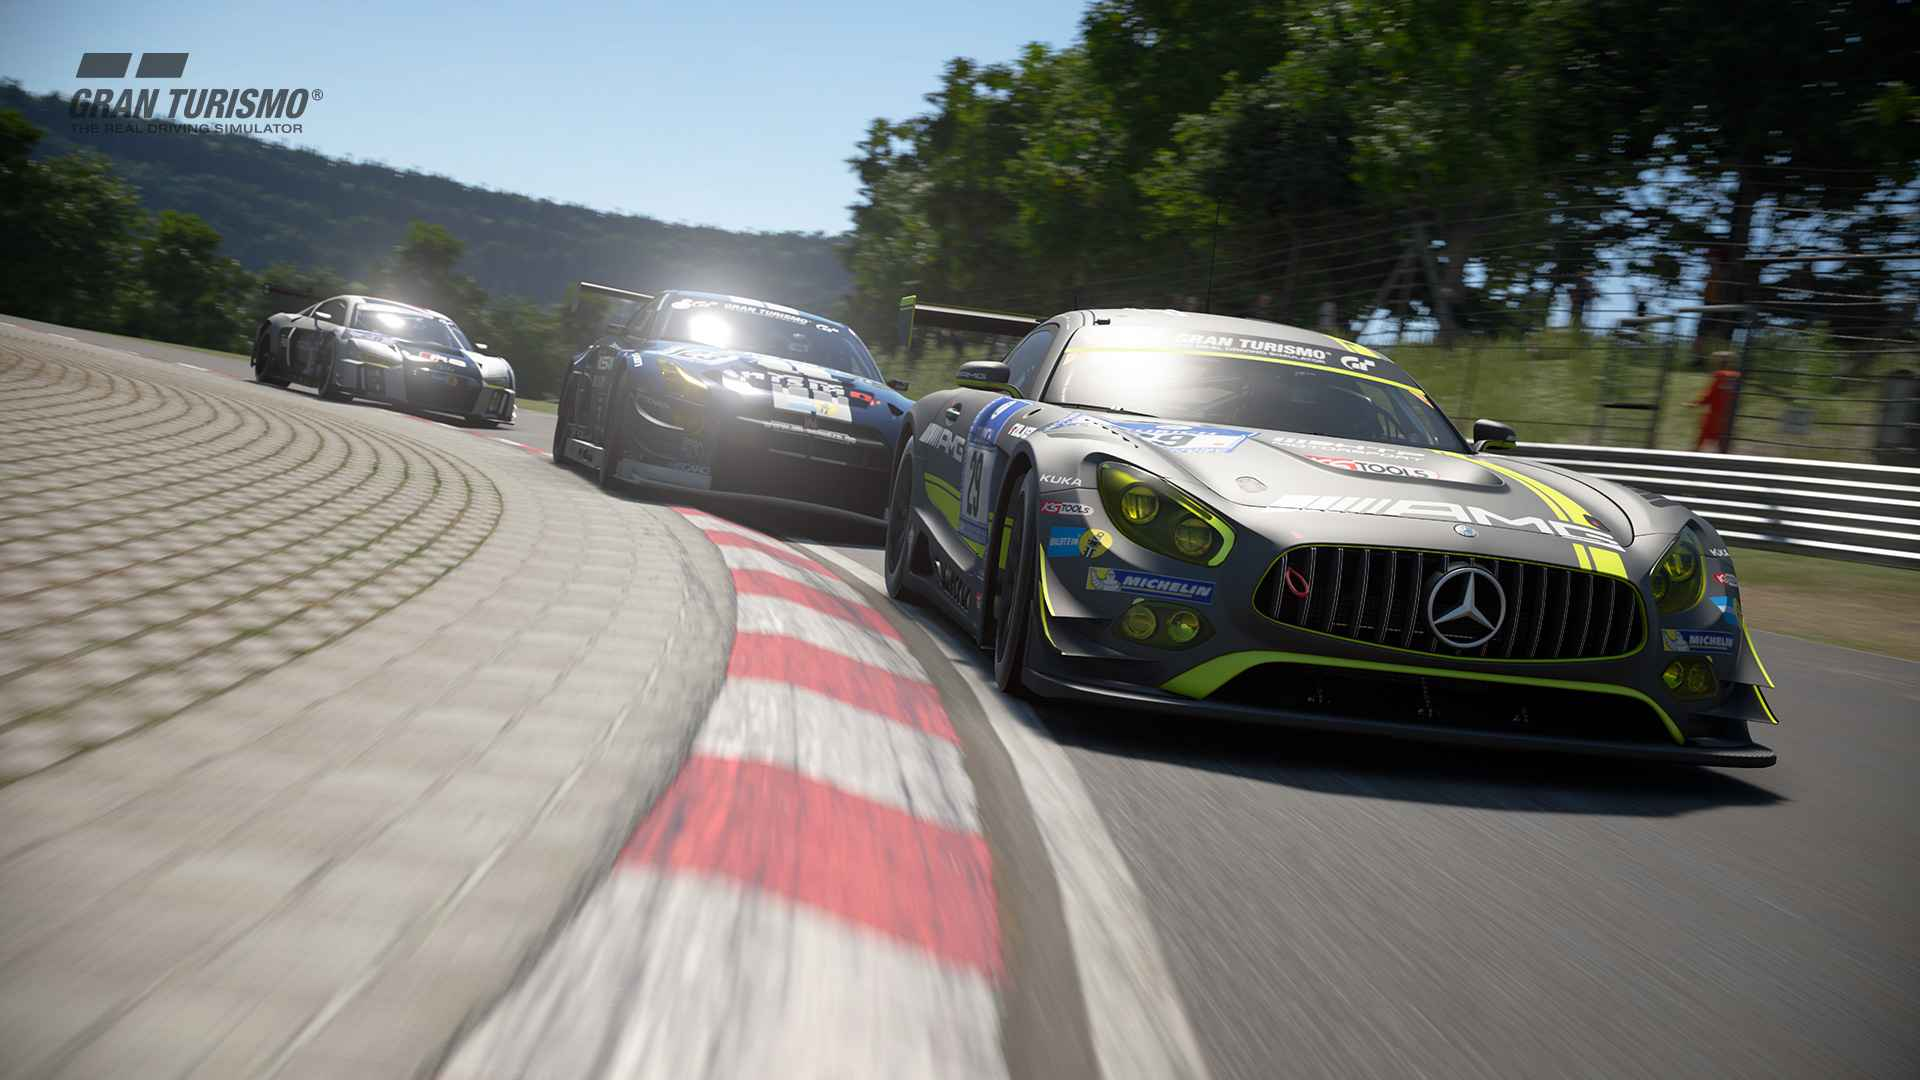 Gran Turismo Sport Update 1.22 Rolls Into Town 30th July